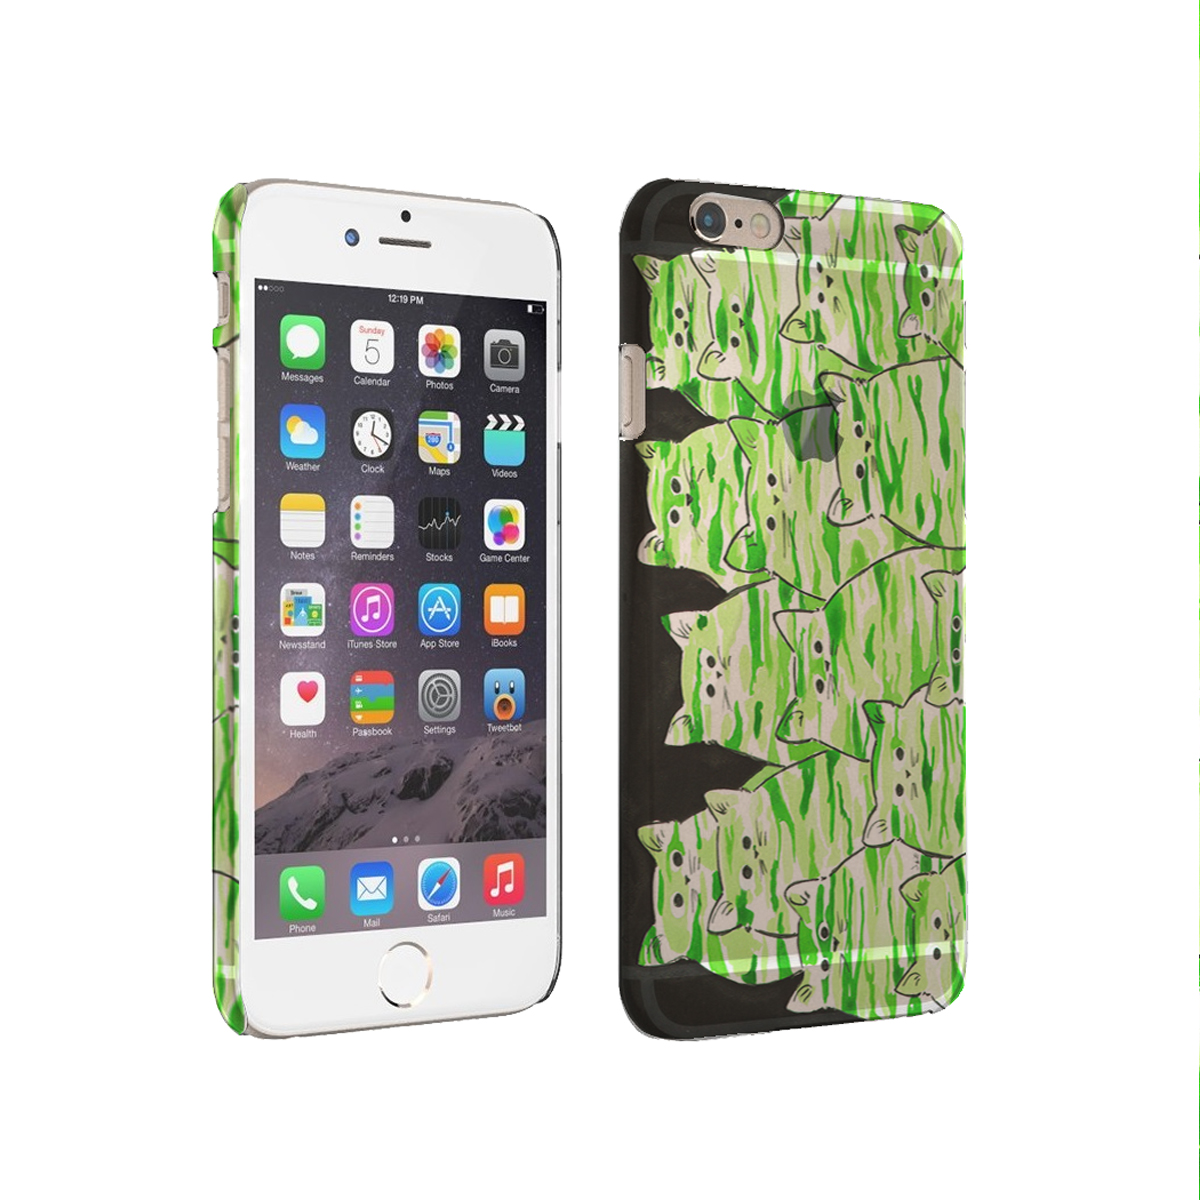 KuzmarK iPhone 6 Clear Cover Case - Green Camo Camouflage Kitties Abstract Cat Art by Denise Every